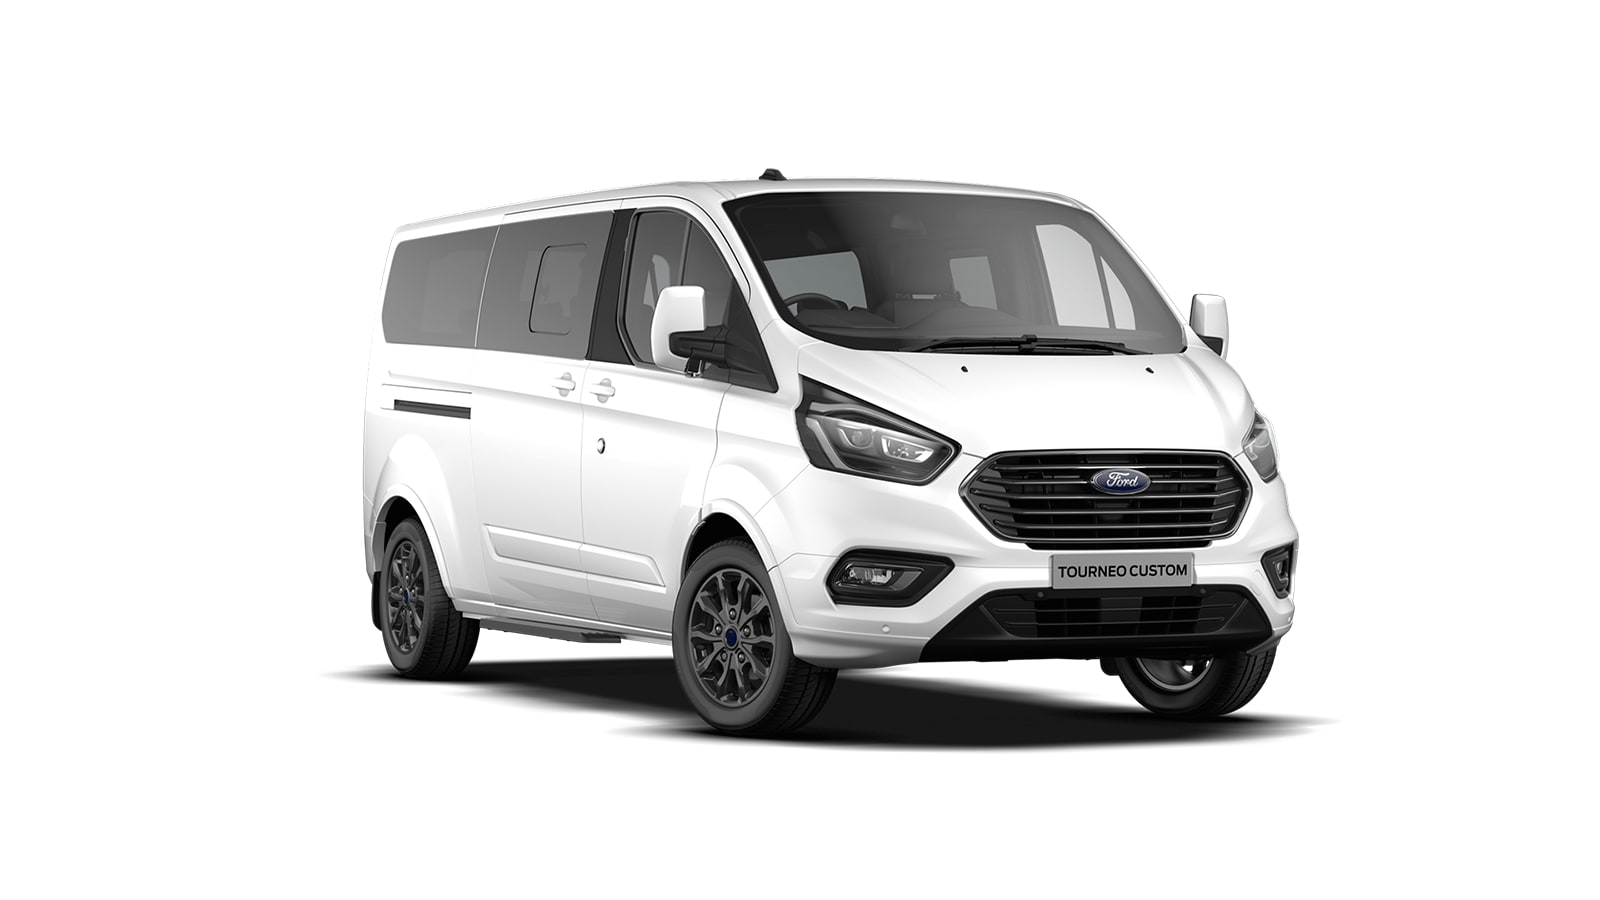 New Ford TOURNEO CUSTOM at Pentre Motors